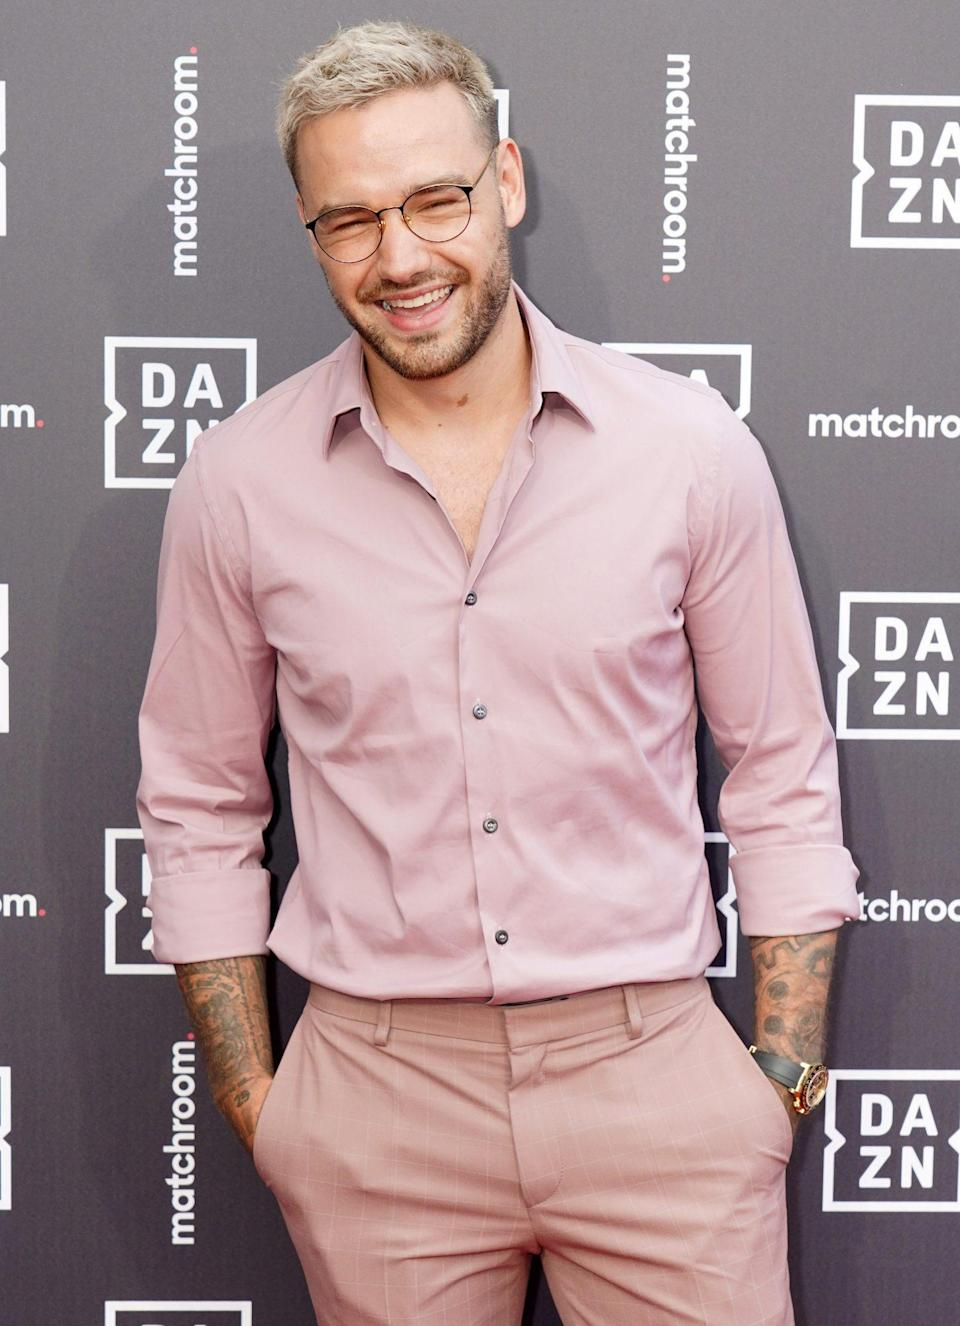 <p>Liam Payne arrives at the launch of Dazn x Matchroom at German Gymnasium in King's Cross, London on July 27.</p>